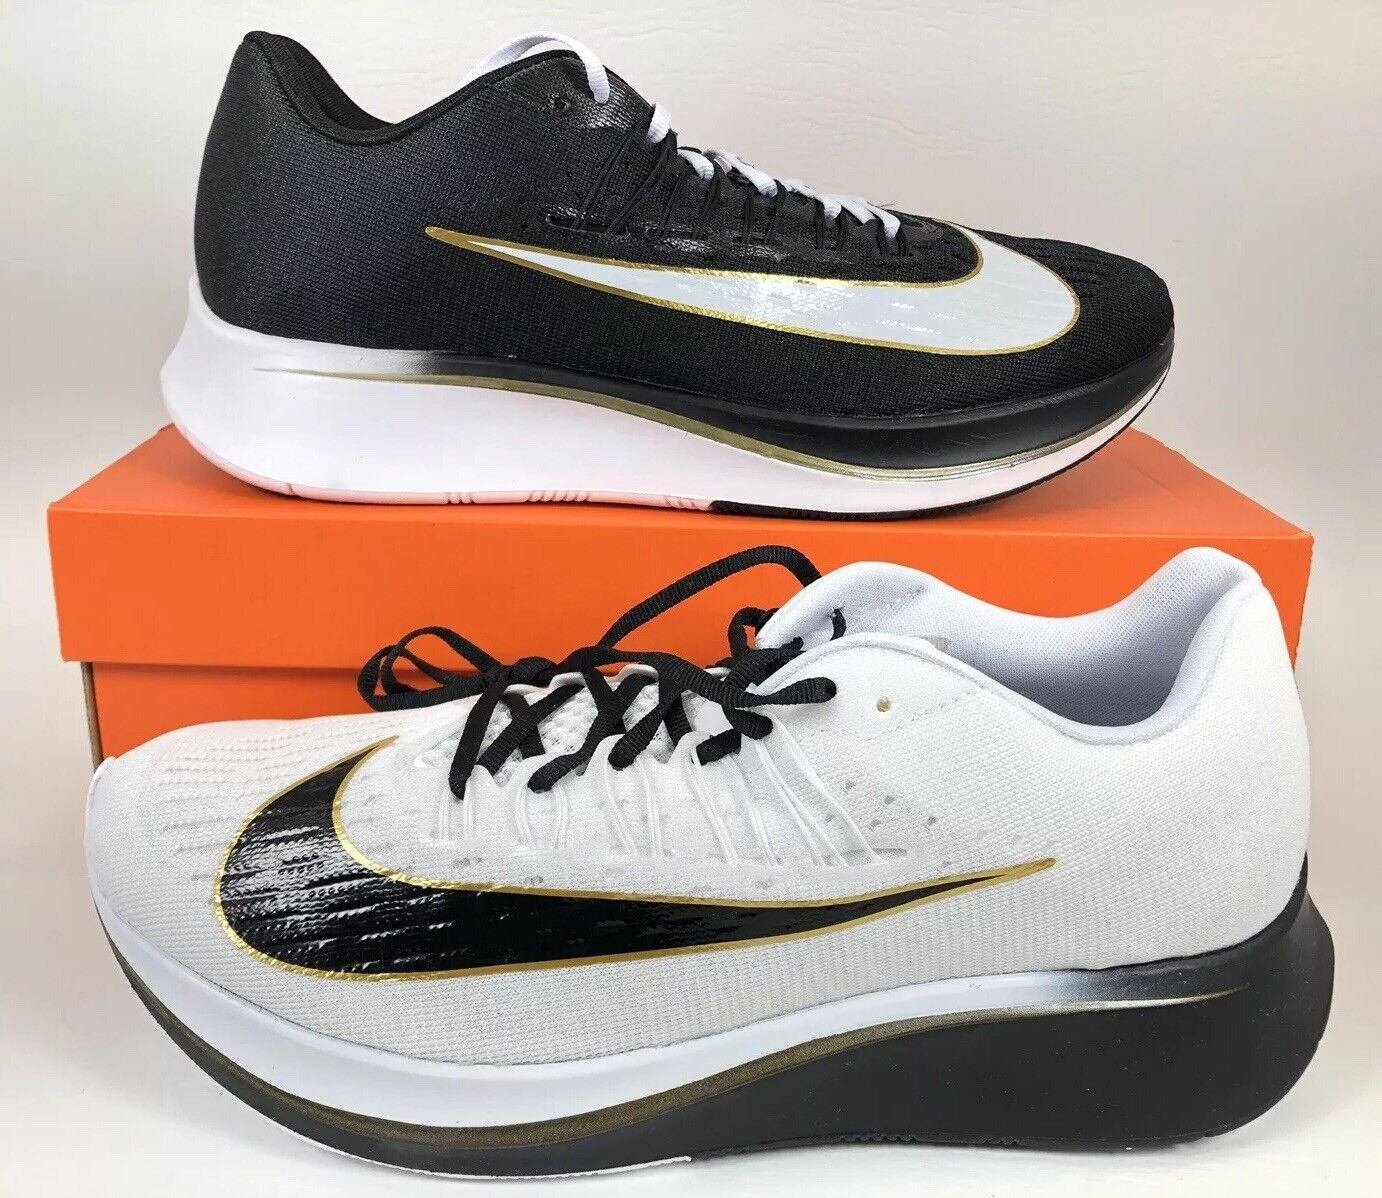 Nike Zoom Fly Mismatch White Black-Metallic gold Vaporfly RARE SOLD OUT SZ 10.5